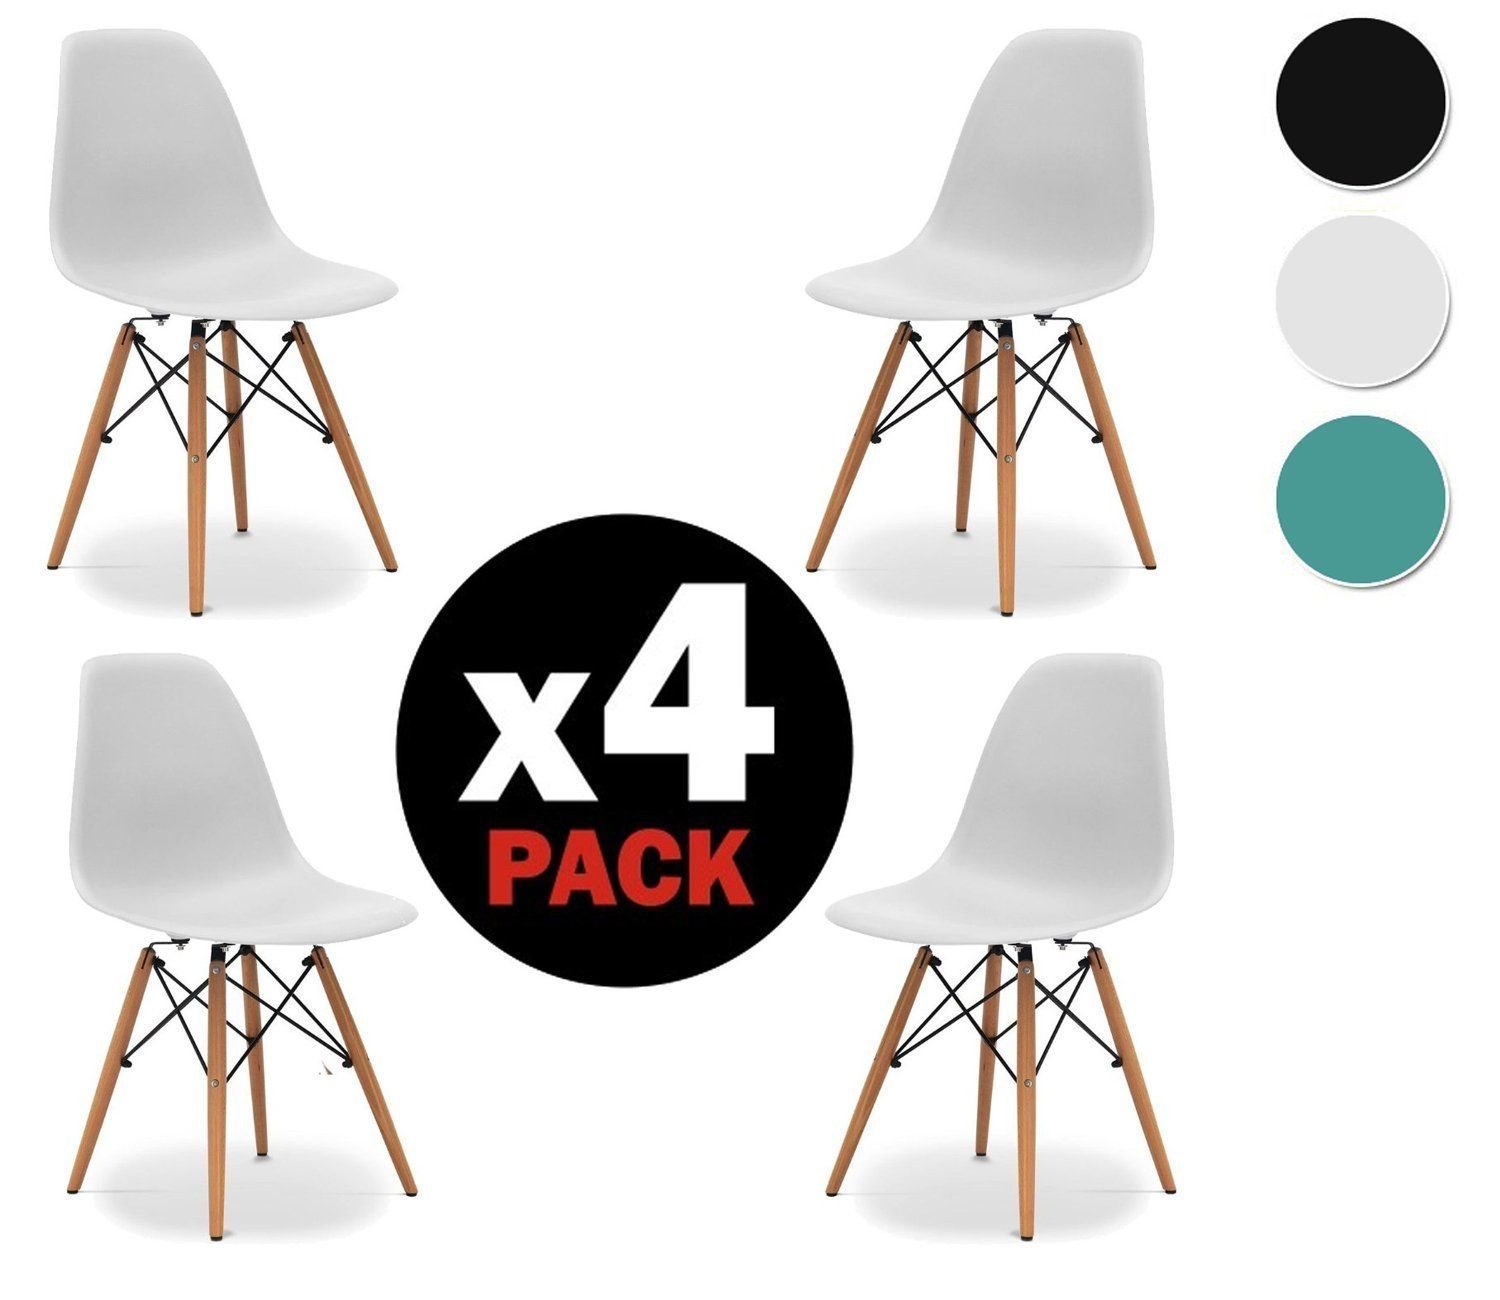 due home Nordik Pack 4 Chairs White Tower Chair Replica Eames White and Beech Measures 47 cm Width x 56 cm Depth x 81 cm Height Amazon